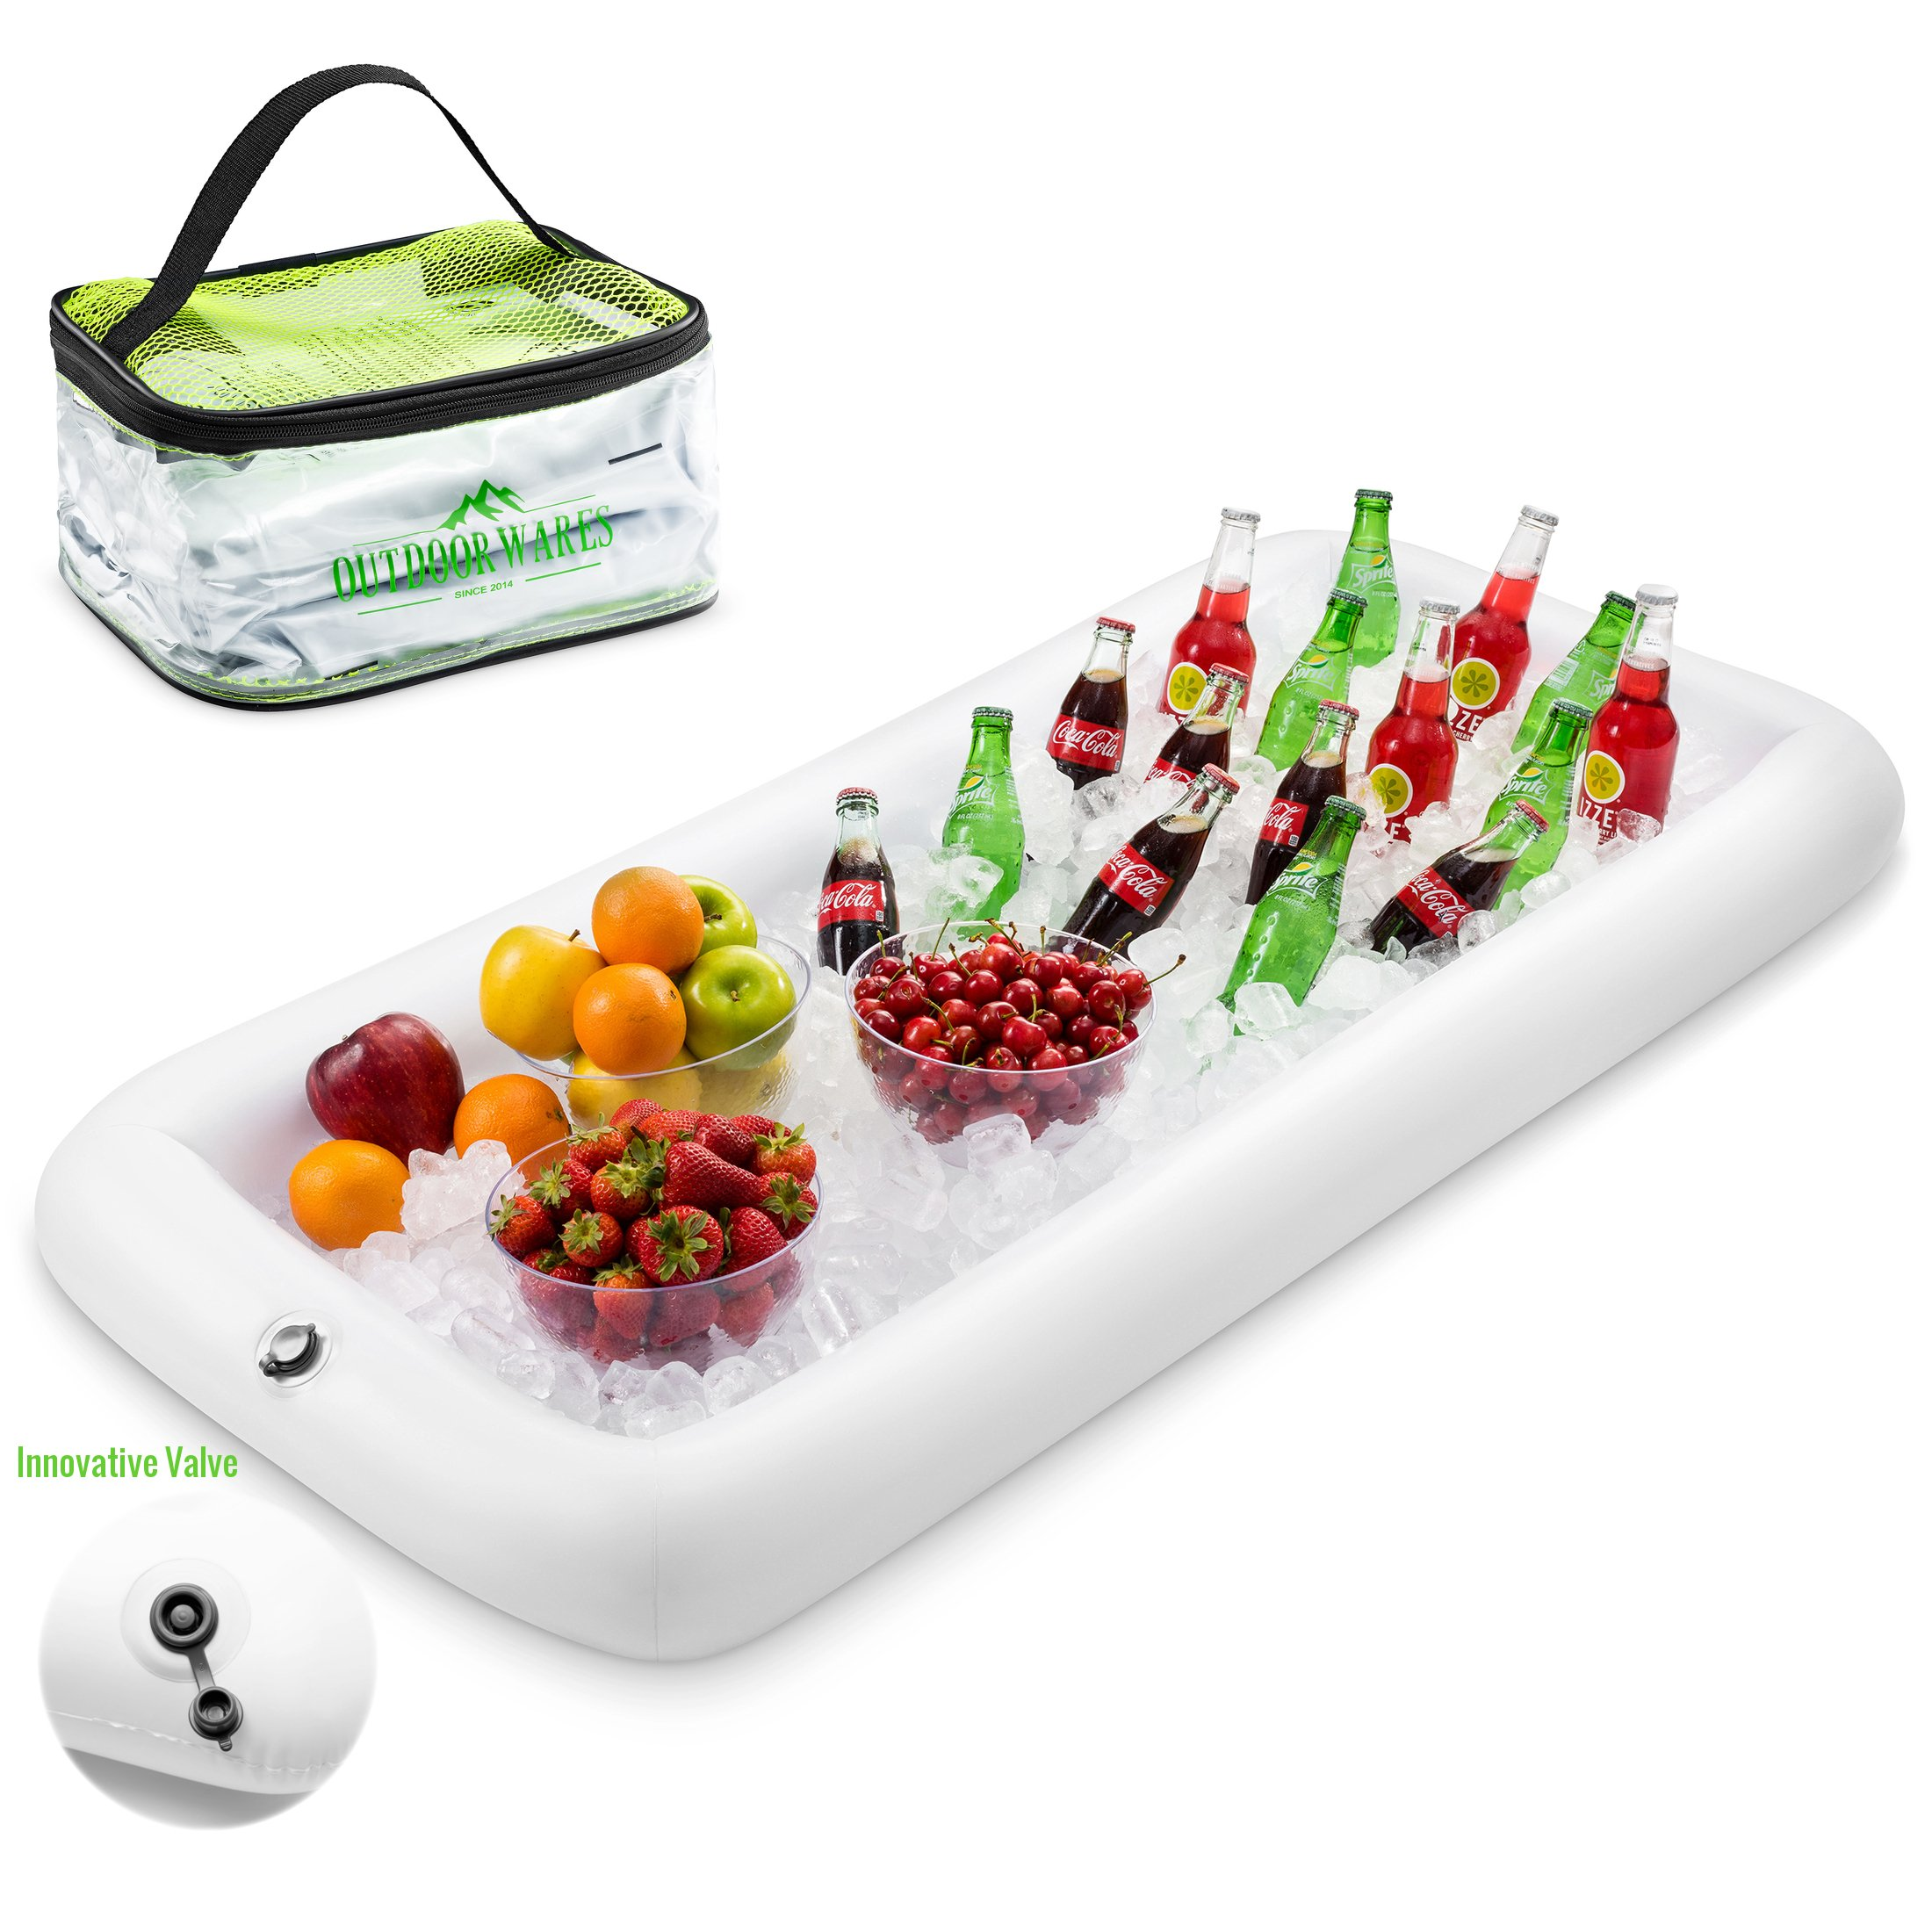 premium Inflatable Salad Bar Tray With New Innovative Valve for EASY Inflation - Deflation By Outdoorwares Food & Drink Holder For Picnics, Barbeques & Parties – 52'' x 22'' x 4.5''